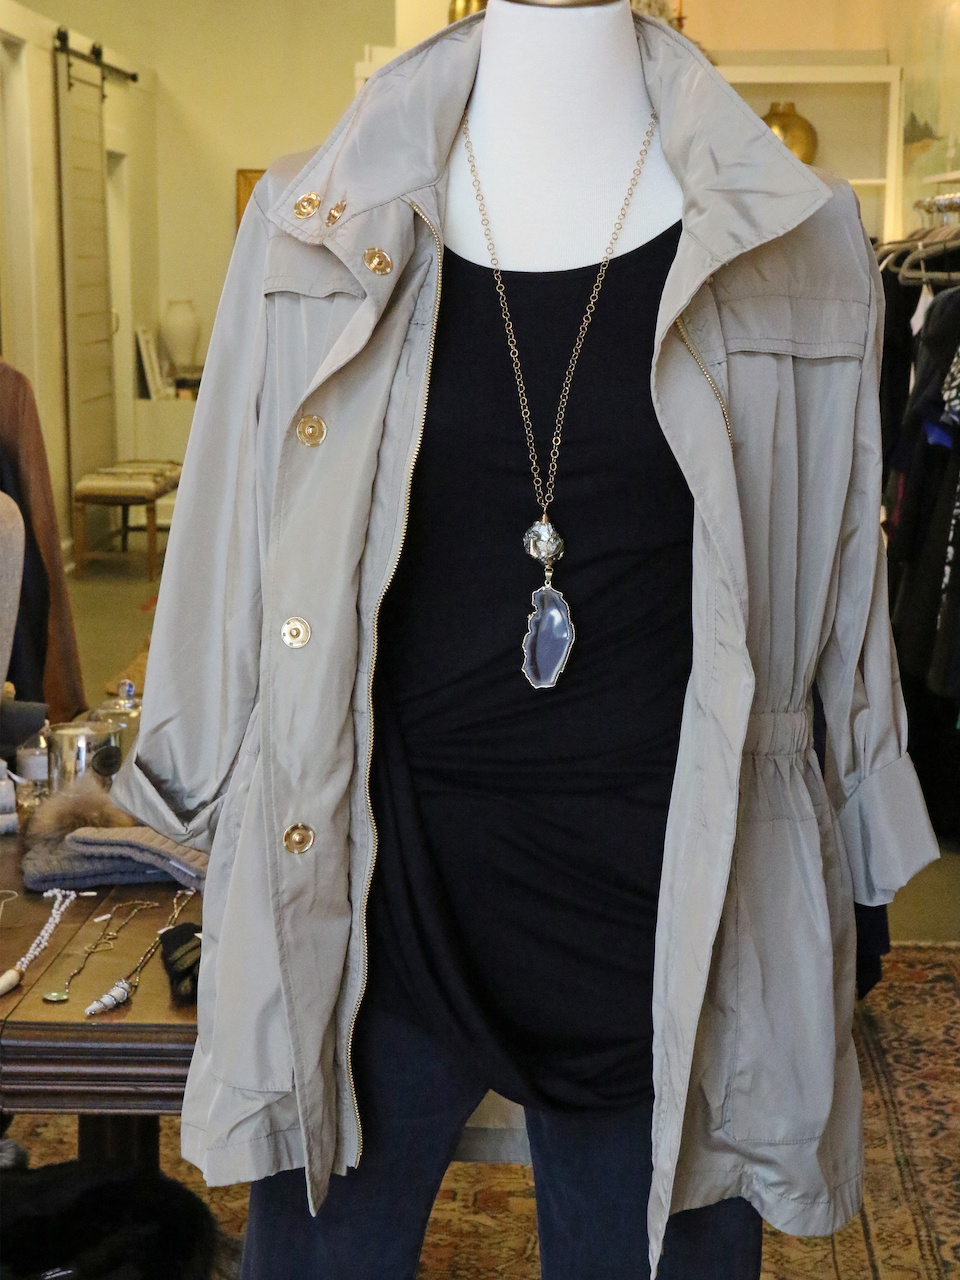 Stay stylish, chic, AND dry in this all-season rain jacket from K. McCarthy in Nashville!